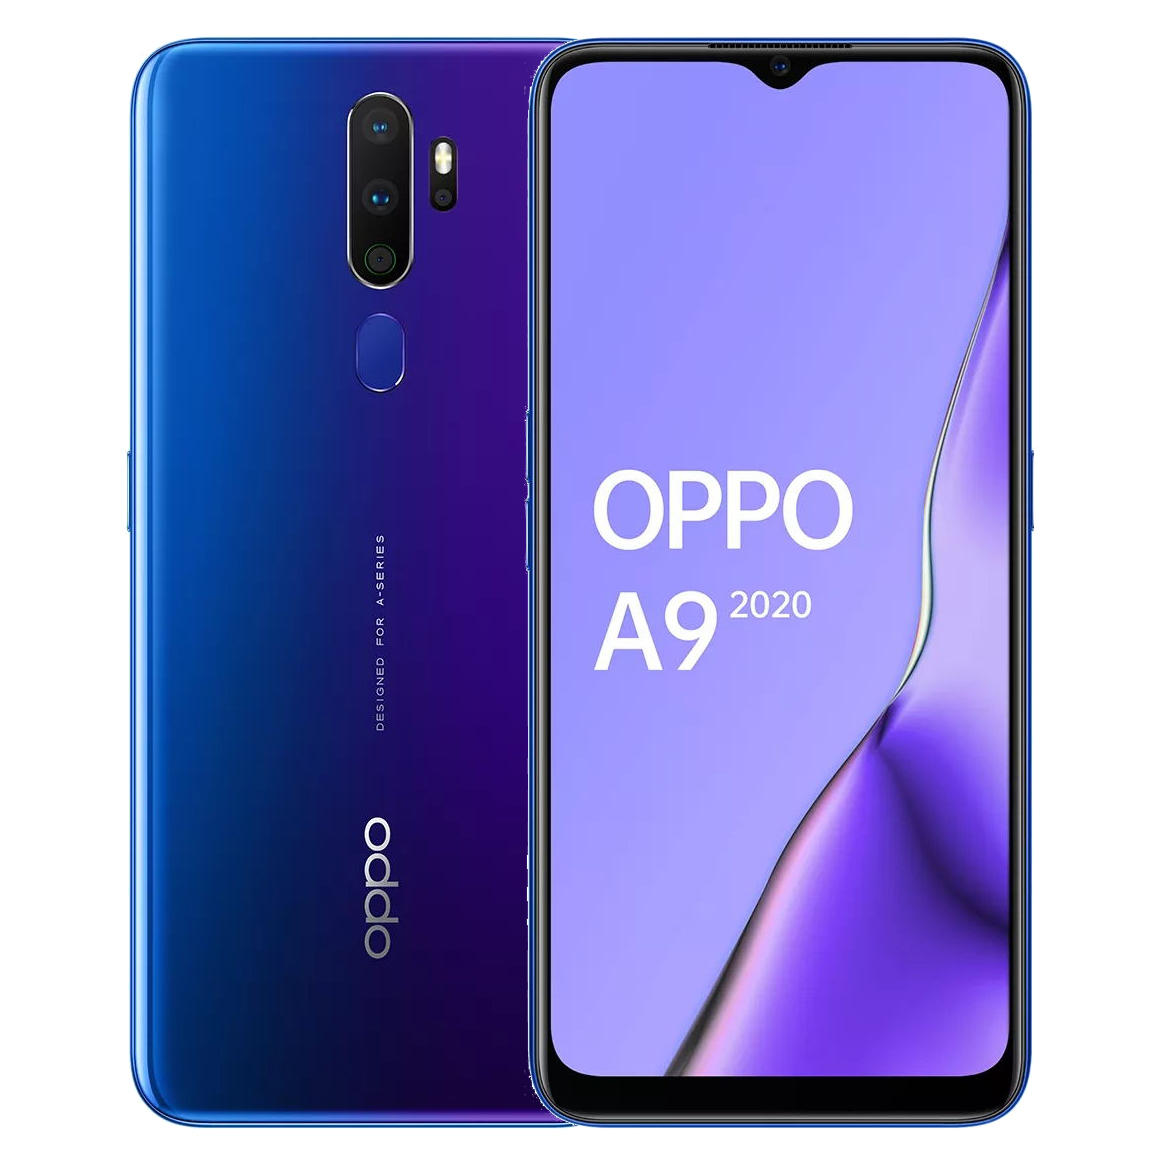 OPPO A9 2020 6.5 inch HD+ 5000mAh Android 9.0 48MP Quad Rear Cameras 4GB 128GB Snapdragon 665 Octa Core 4G Smartphone - Space Purple